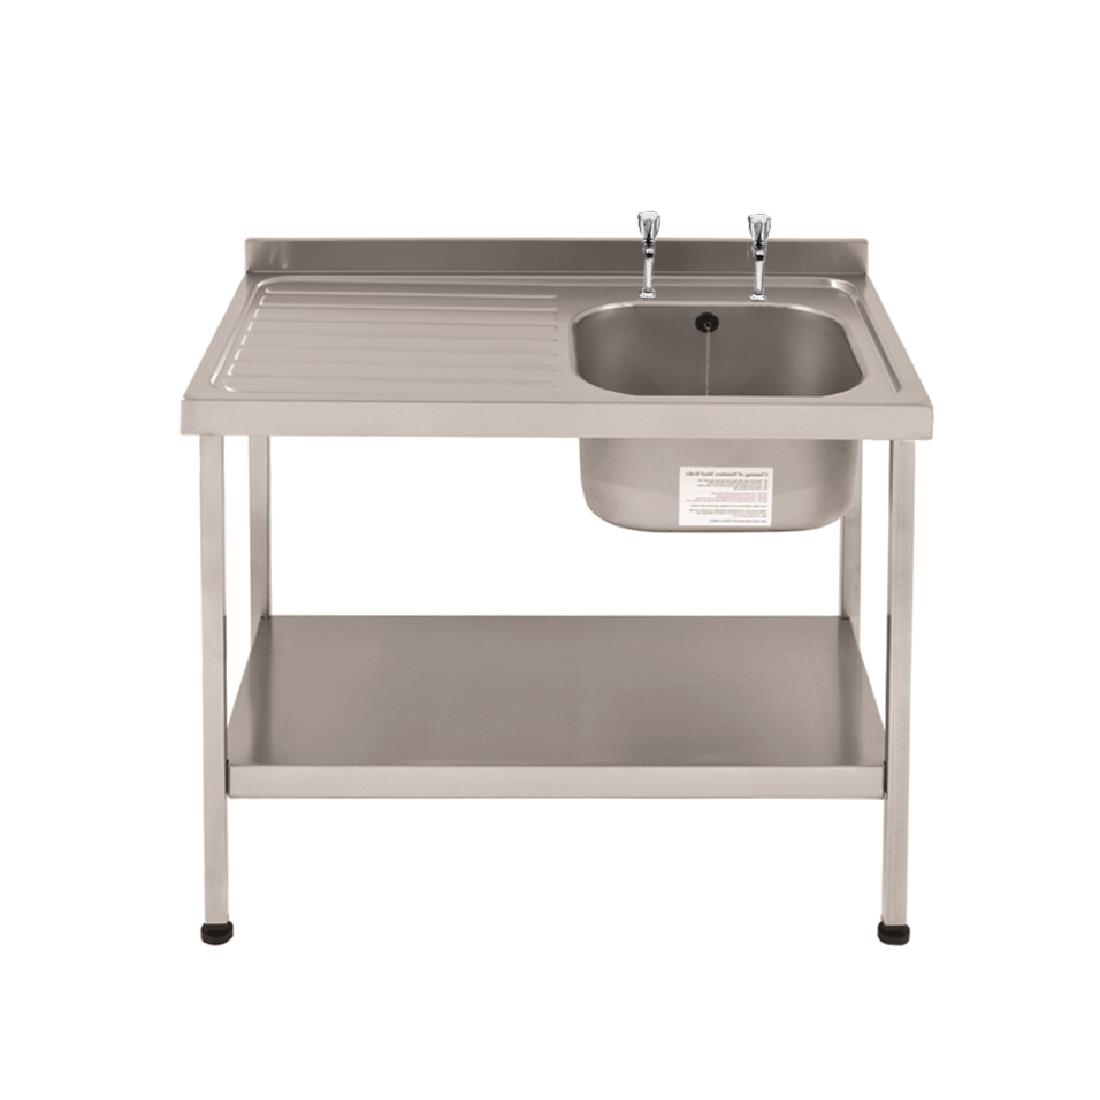 Image of Franke Sissons Self Assembly Stainless Steel Sink Left Hand Drainer 1000x600mm